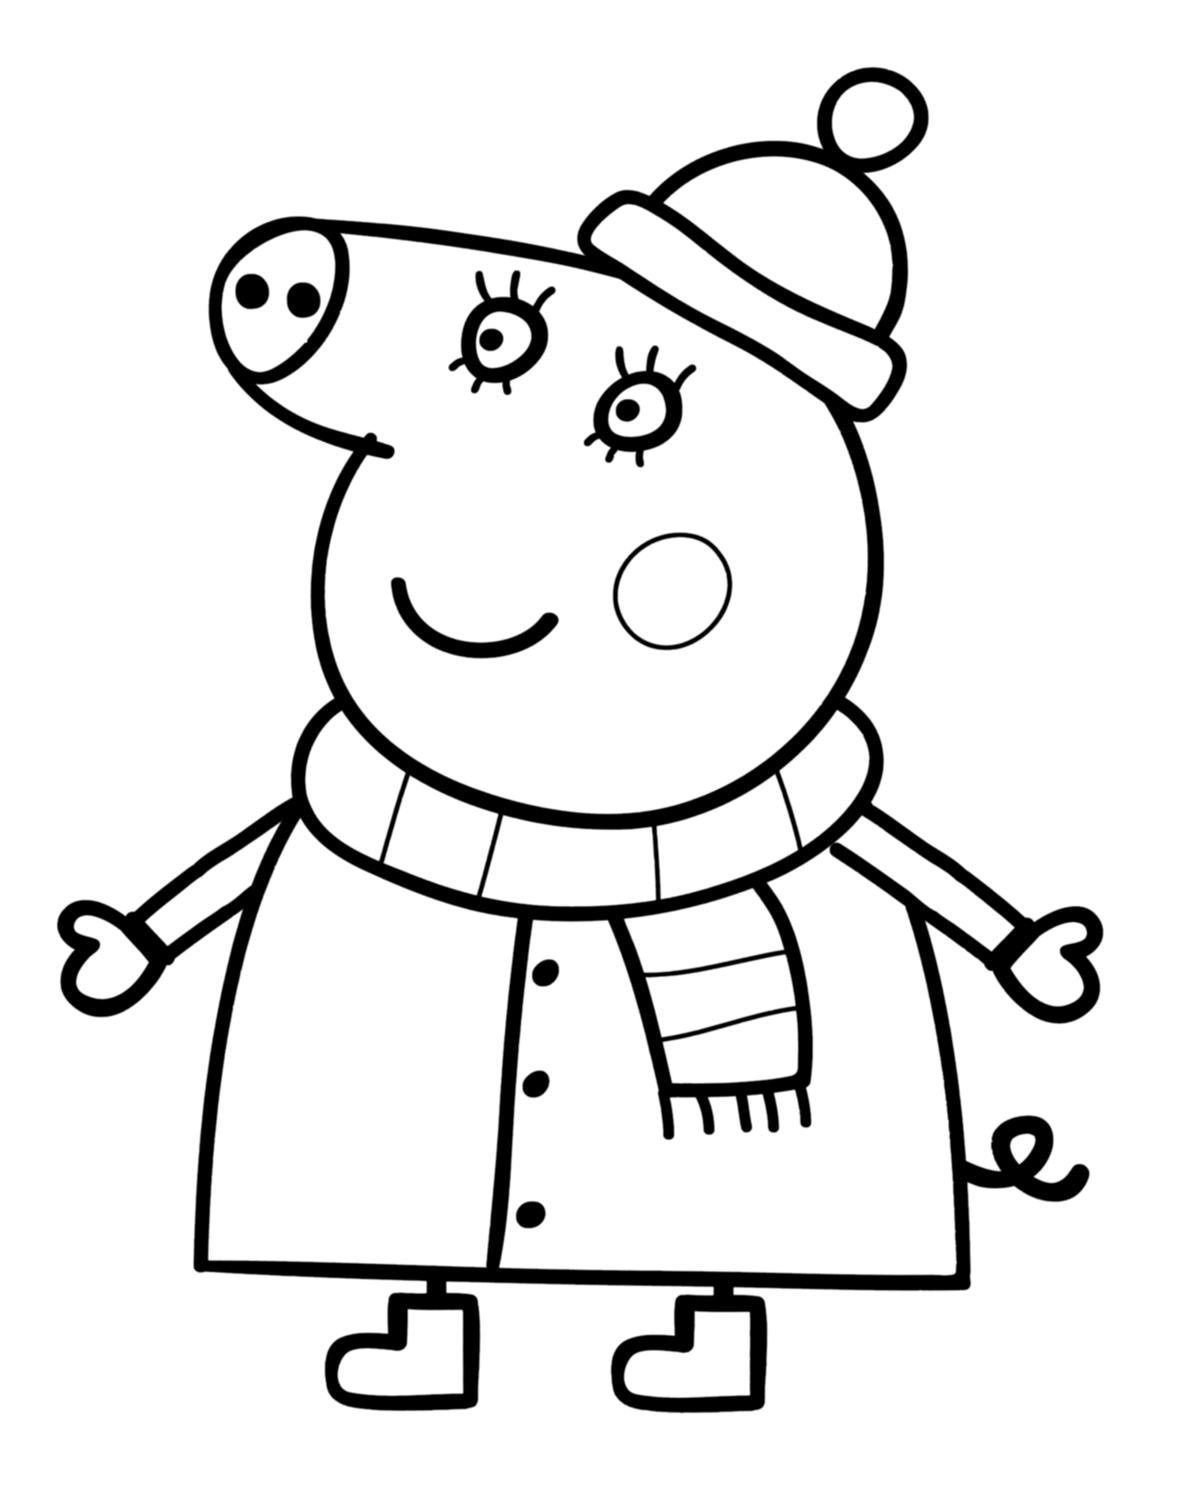 peppa pig pictures for colouring peppa pig coloring pages pig pictures colouring peppa for